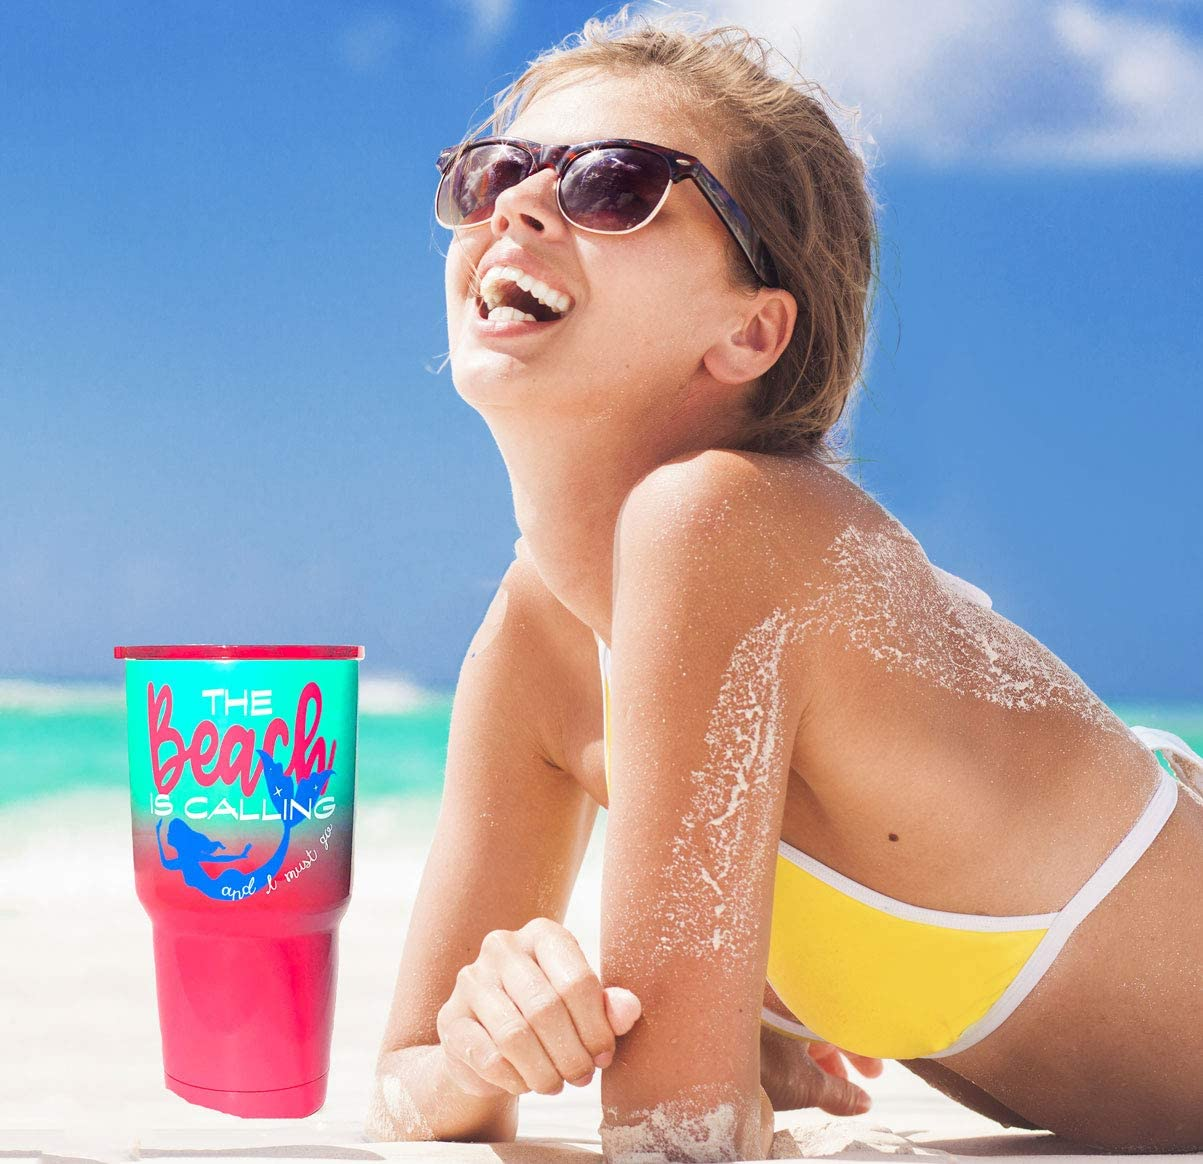 Fun Pretty Beach Life Theme Vacation Drink Hot and Cold Sea Foam Teal Dipped Ombre Beach is Calling Mermaid Travel Tumbler Cup Women Vacuum Insulated Stainless Steel Pink Lid Pink Coral